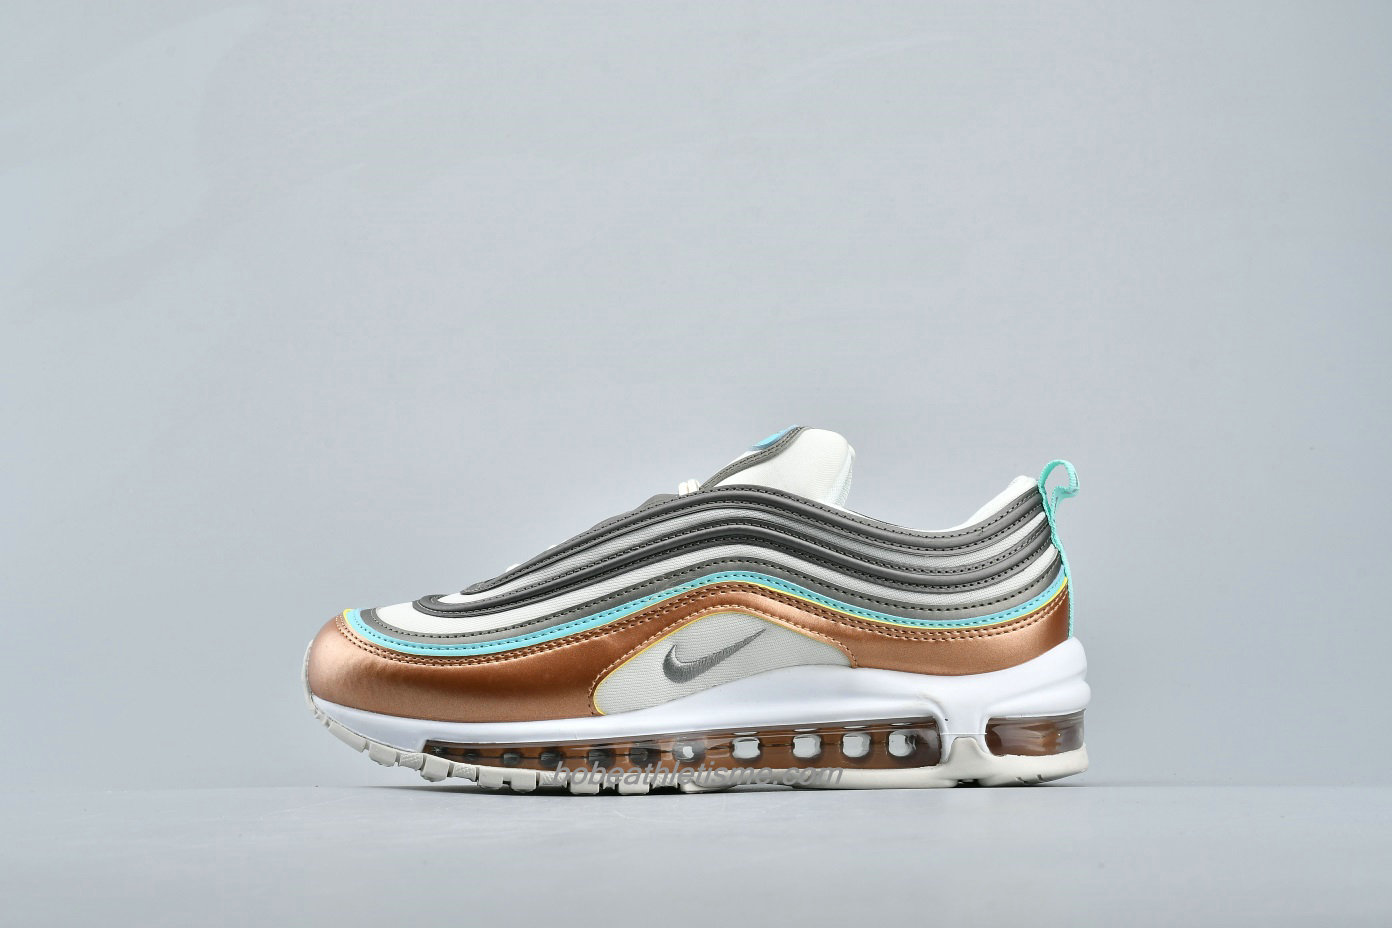 Chaussures Nike Air Max 97 SE CQ4806 071 Marron / Gris / Blanc